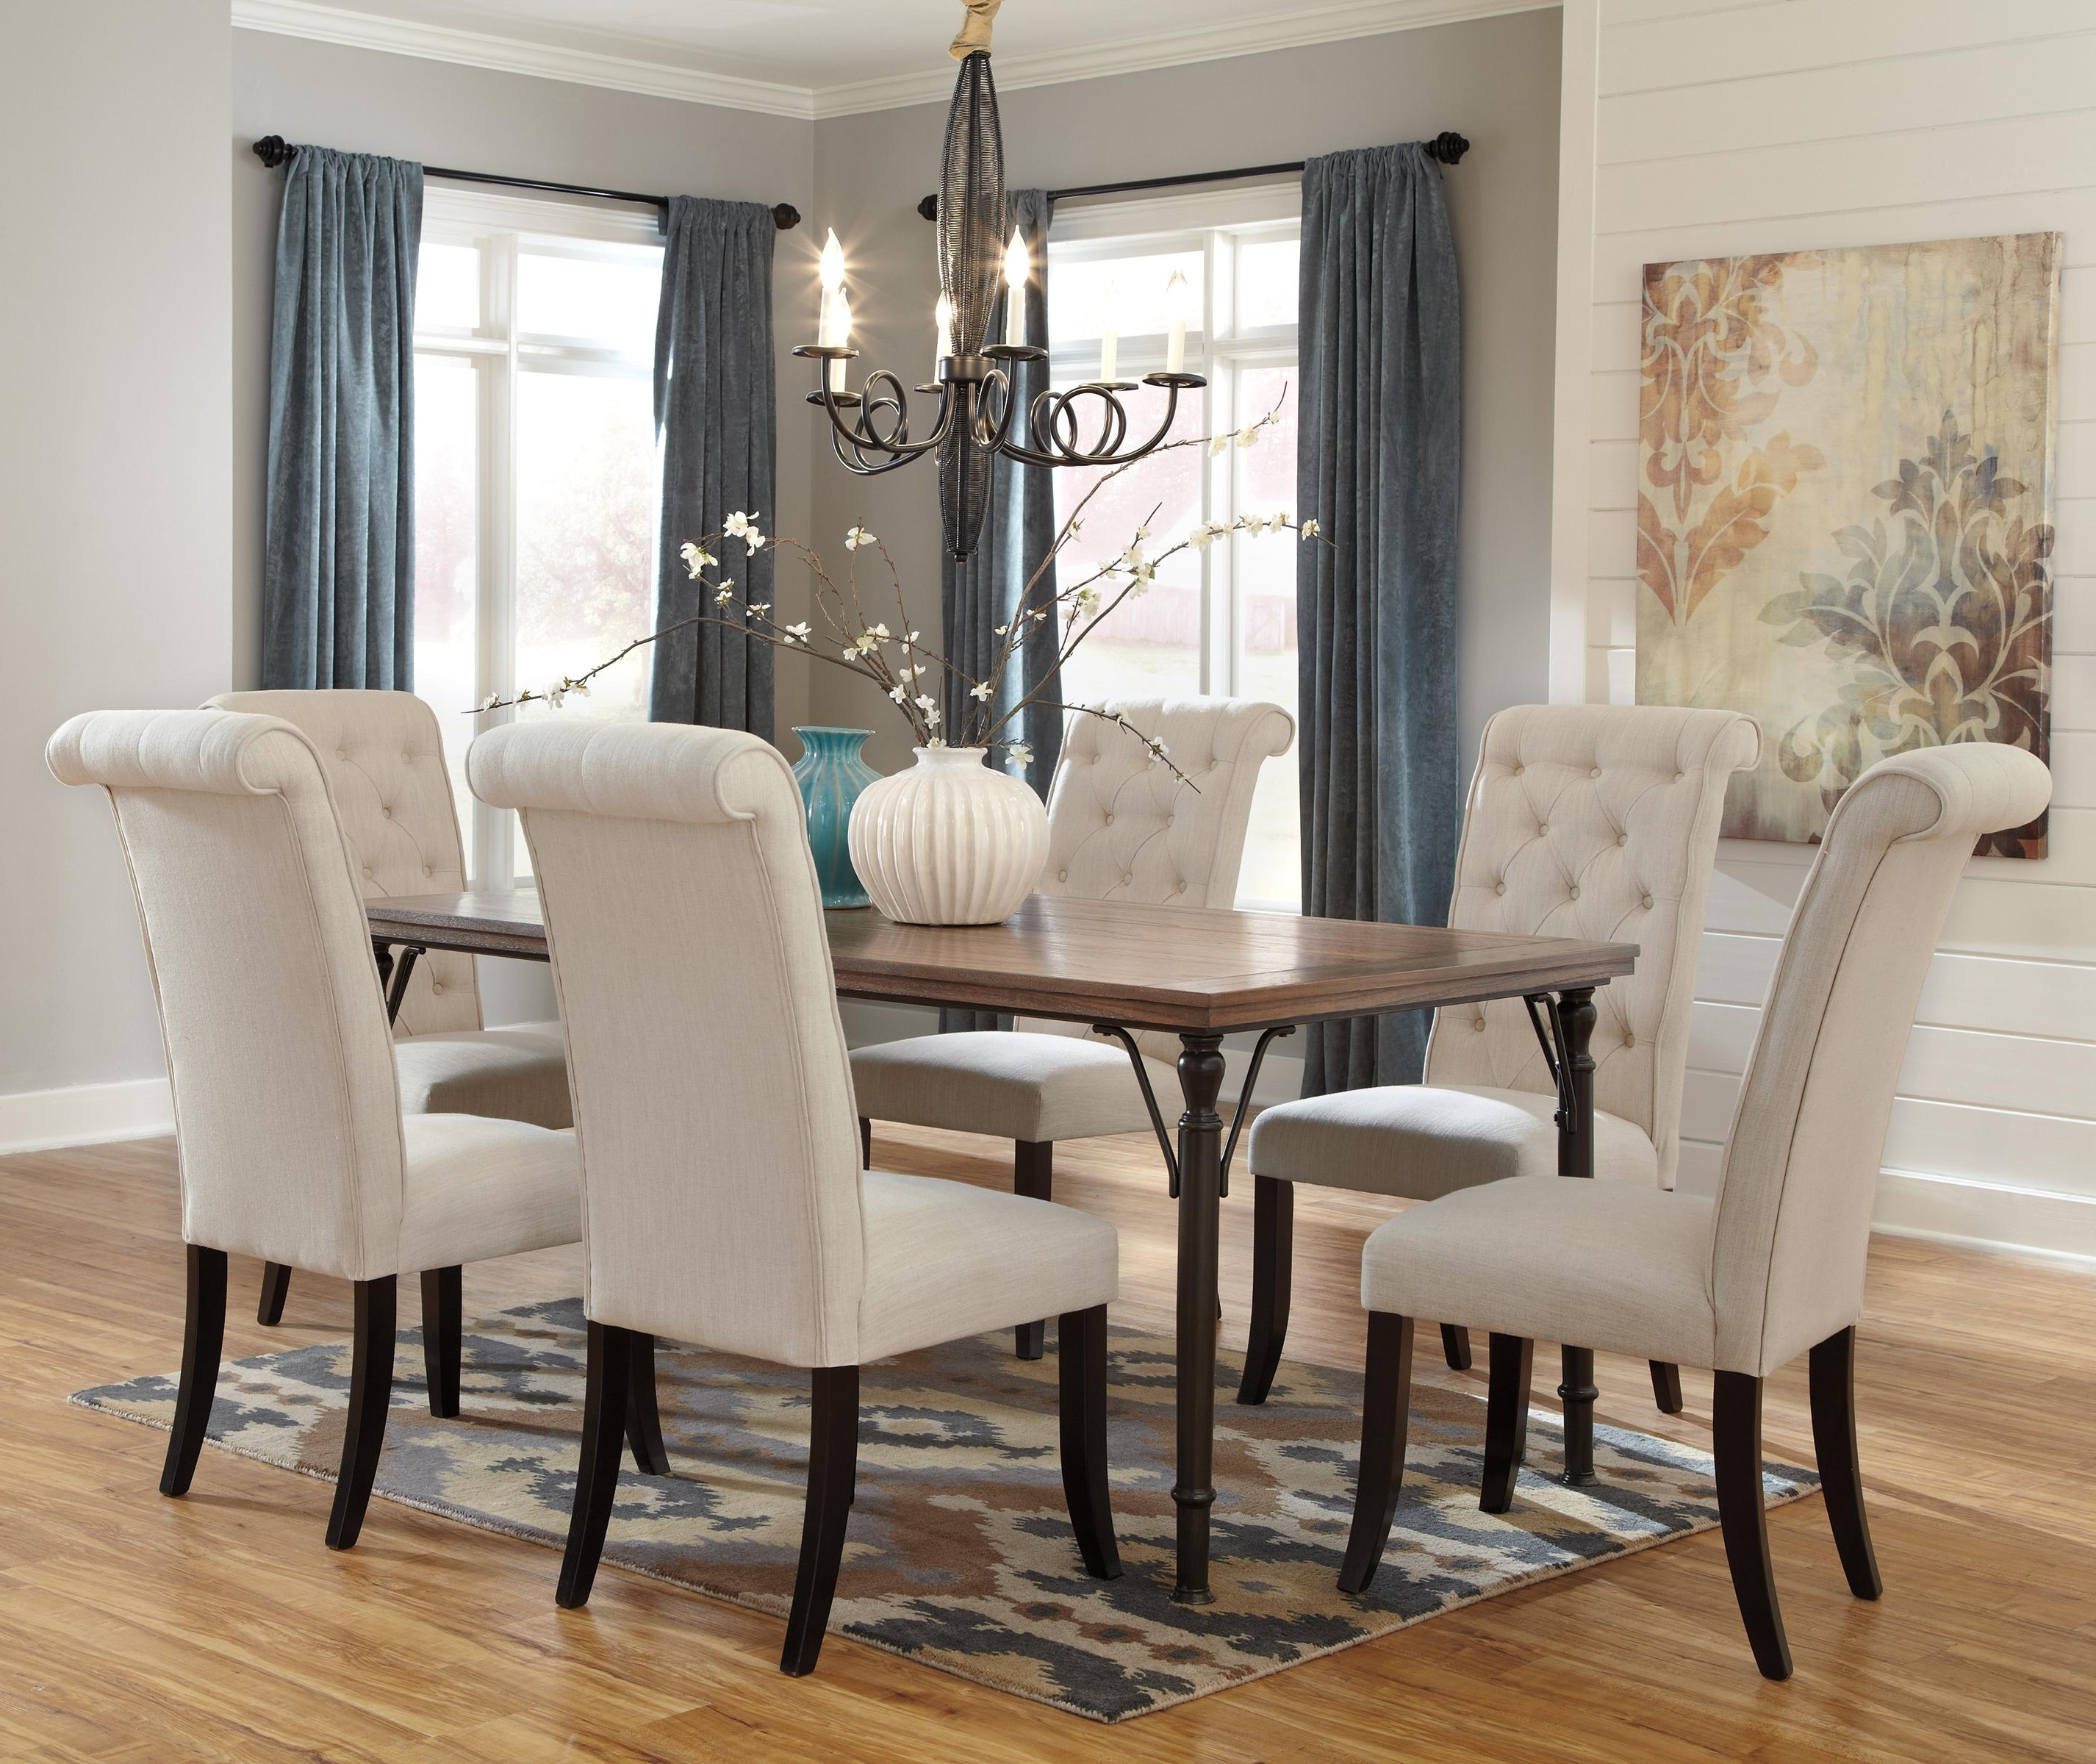 6 Chair Dining Table Sets Within 2017 Theodore 7 Piece Rectangular Dining Room Table Set W/ Wood Top (View 7 of 25)